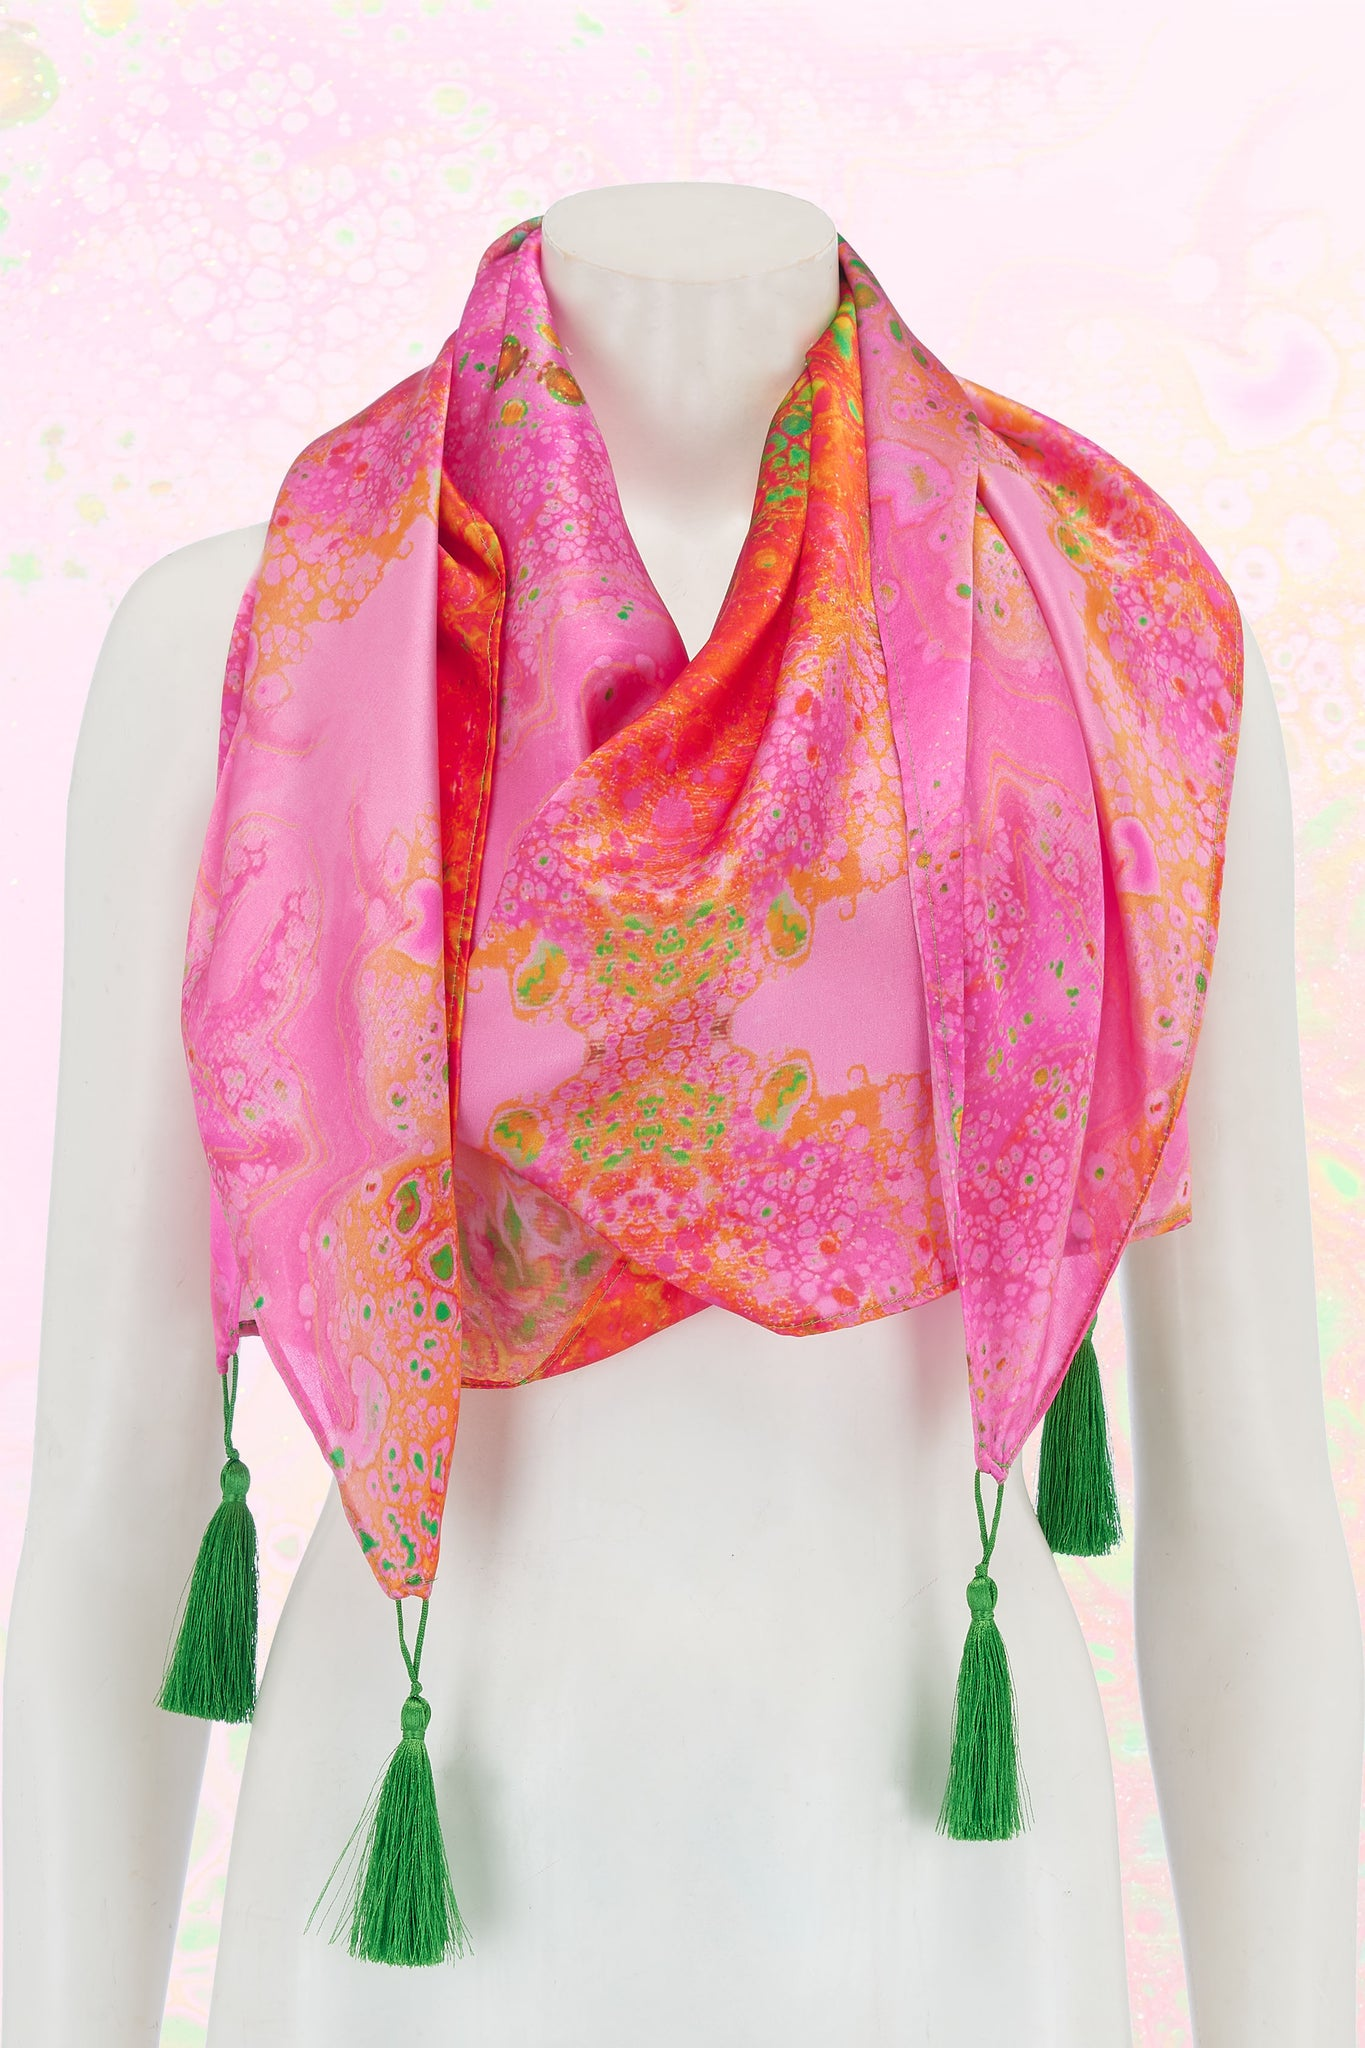 Körpermitose Large Silk Pink and Orange Printed Scarf